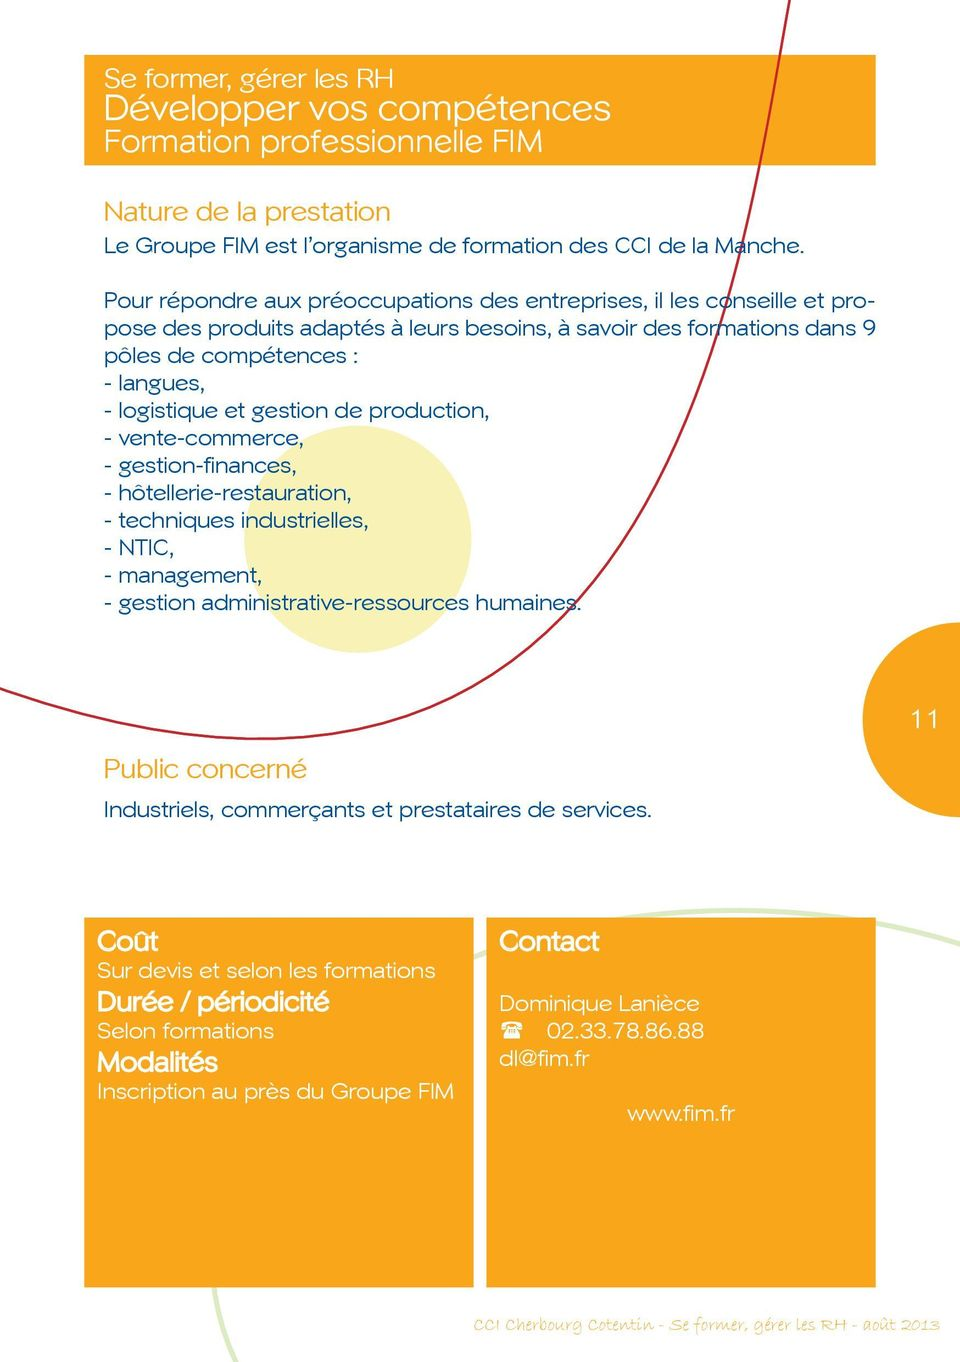 gestion de production, - vente-commerce, - gestion-finances, - hôtellerie-restauration, - techniques industrielles, - NTIC, - management, - gestion administrative-ressources humaines.